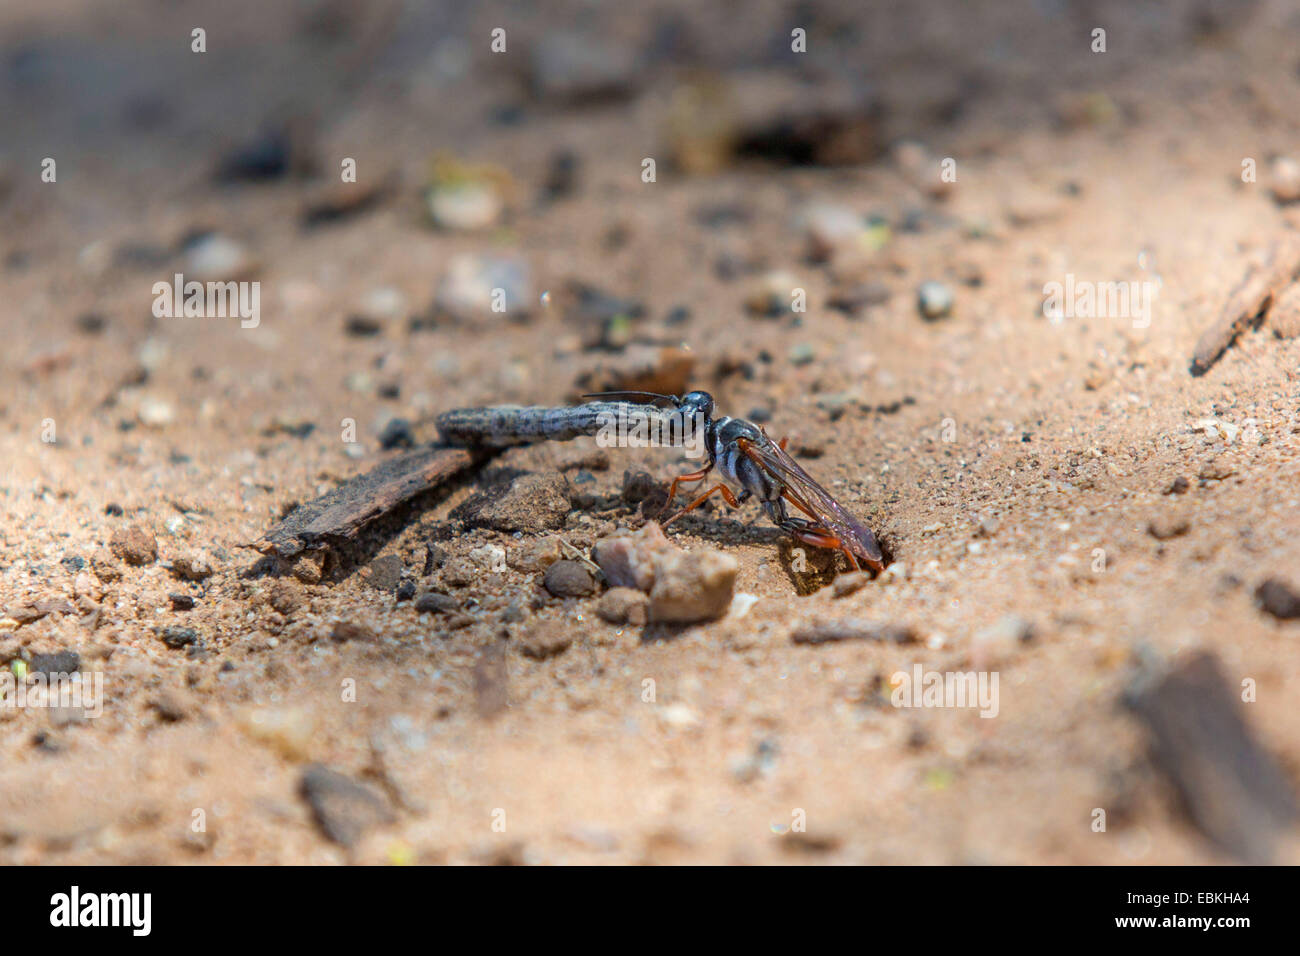 digger wasps, hunting wasps (Sphecidae, Sphegidae), pulling a caterpillar in a prey hiding-place, USA, Arizona, Stock Photo